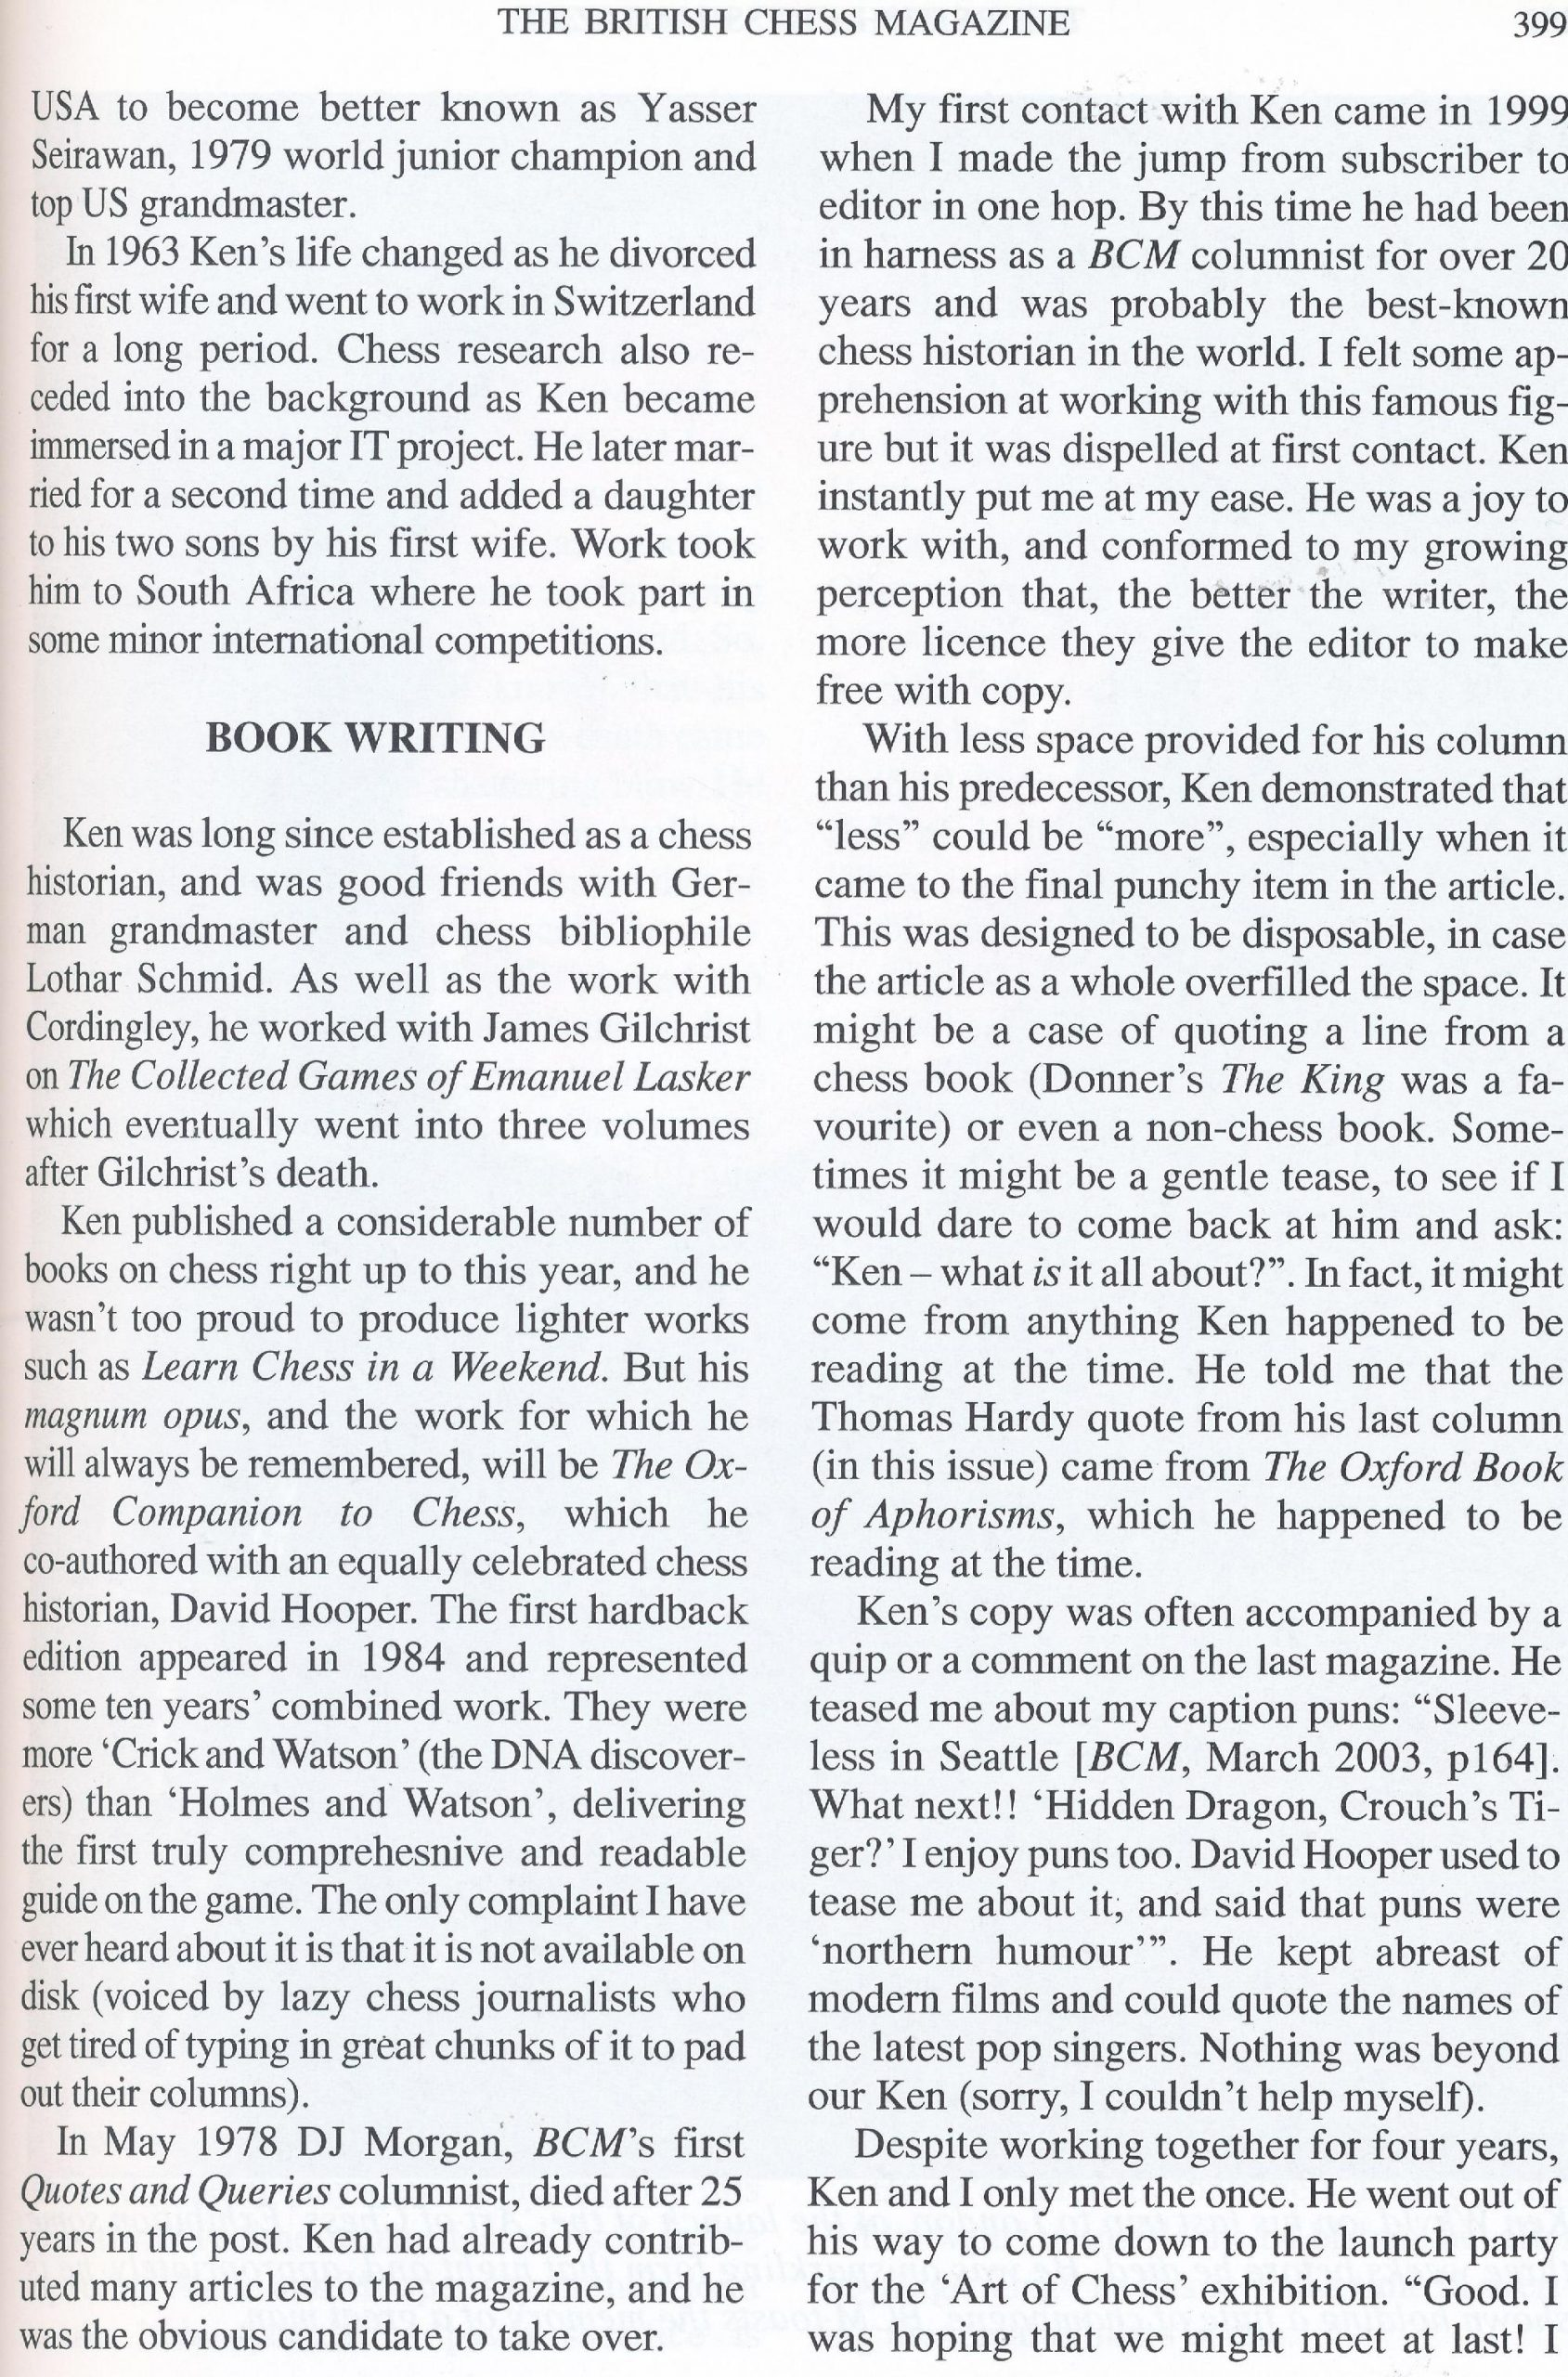 Ken Whyld Remembered from British Chess Magazine, Volume CXXIII (123), Number 8 (August), page 399 by Editor, John Saunders and Bernard Cafferty